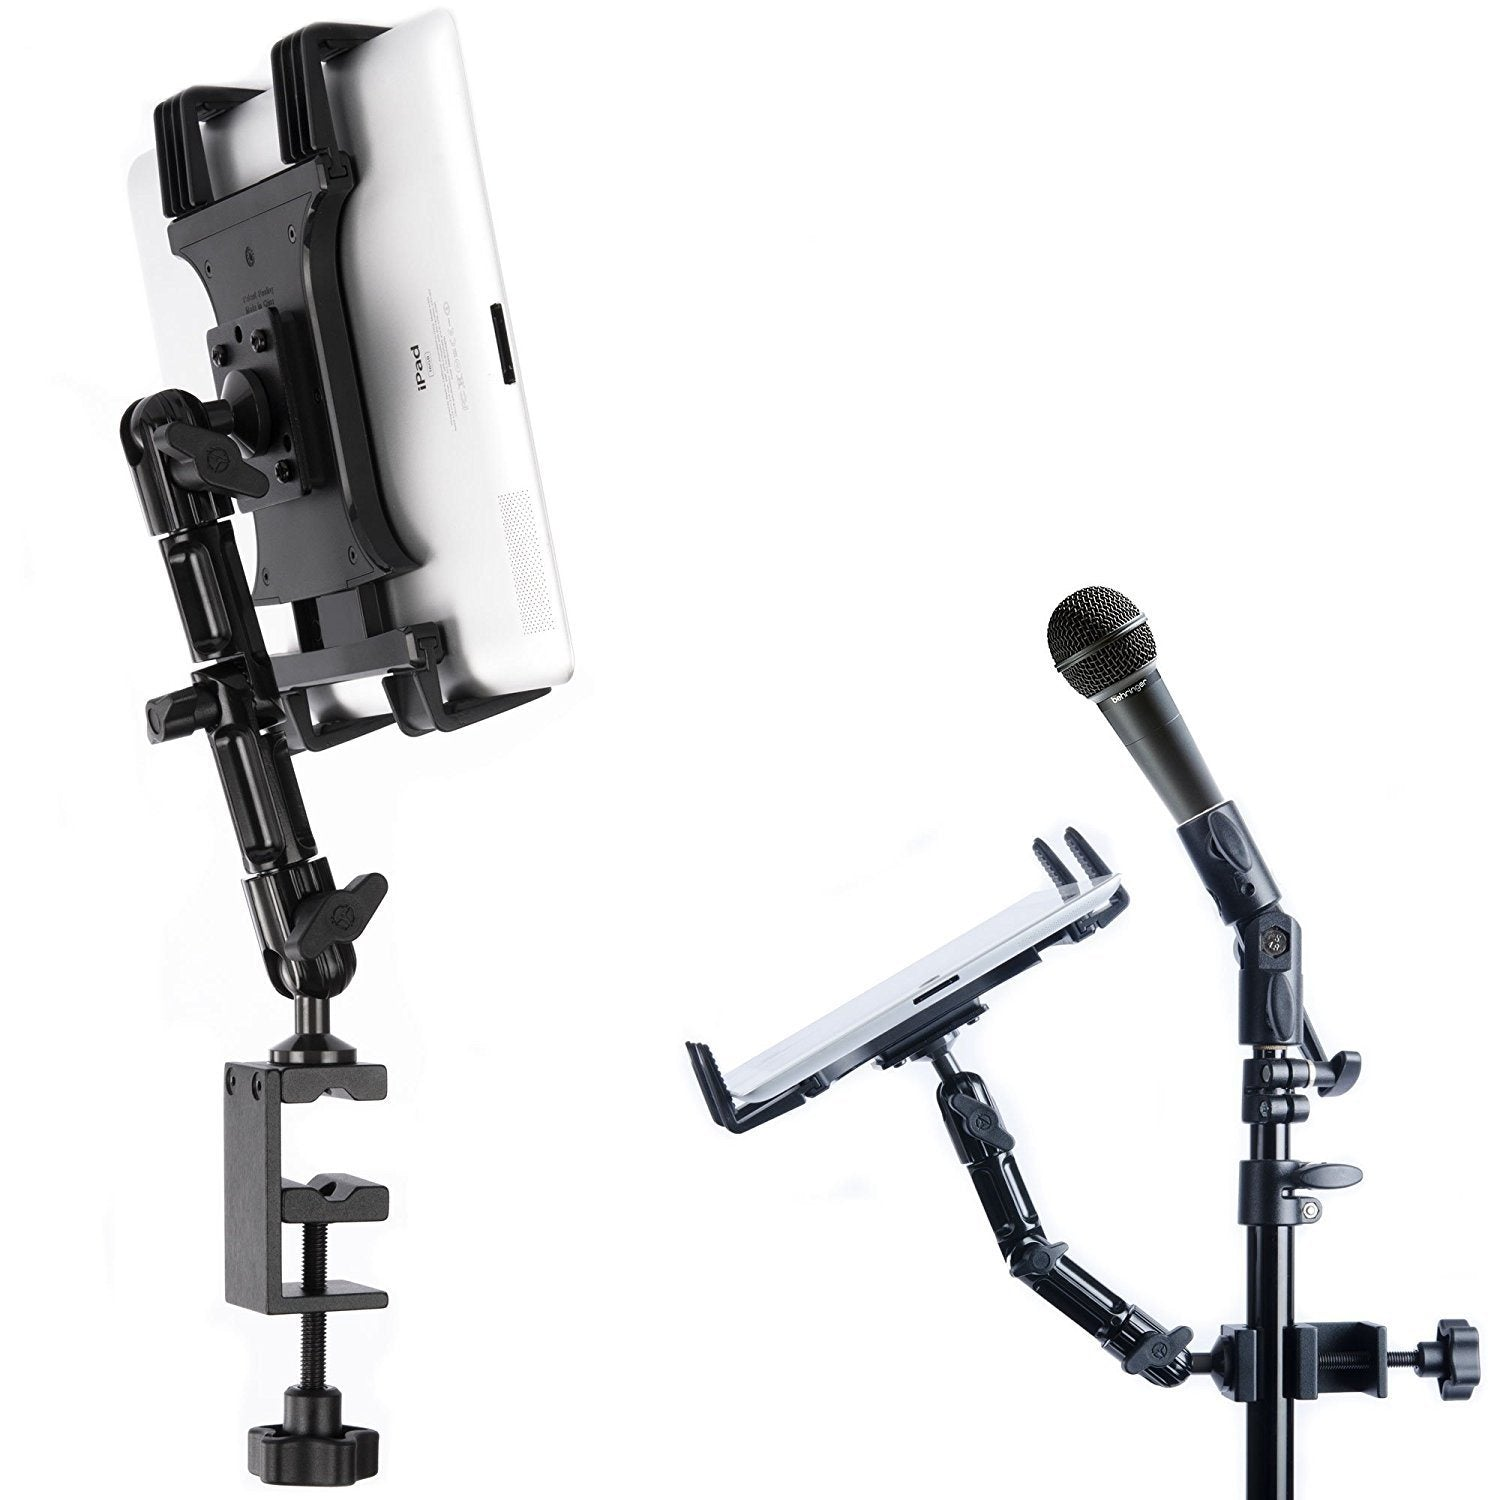 Enjoyable Tablet Holder For Desk Or Microphone Stand 7 Modular Arm Enduro Series Ipad Compatible Interior Design Ideas Clesiryabchikinfo